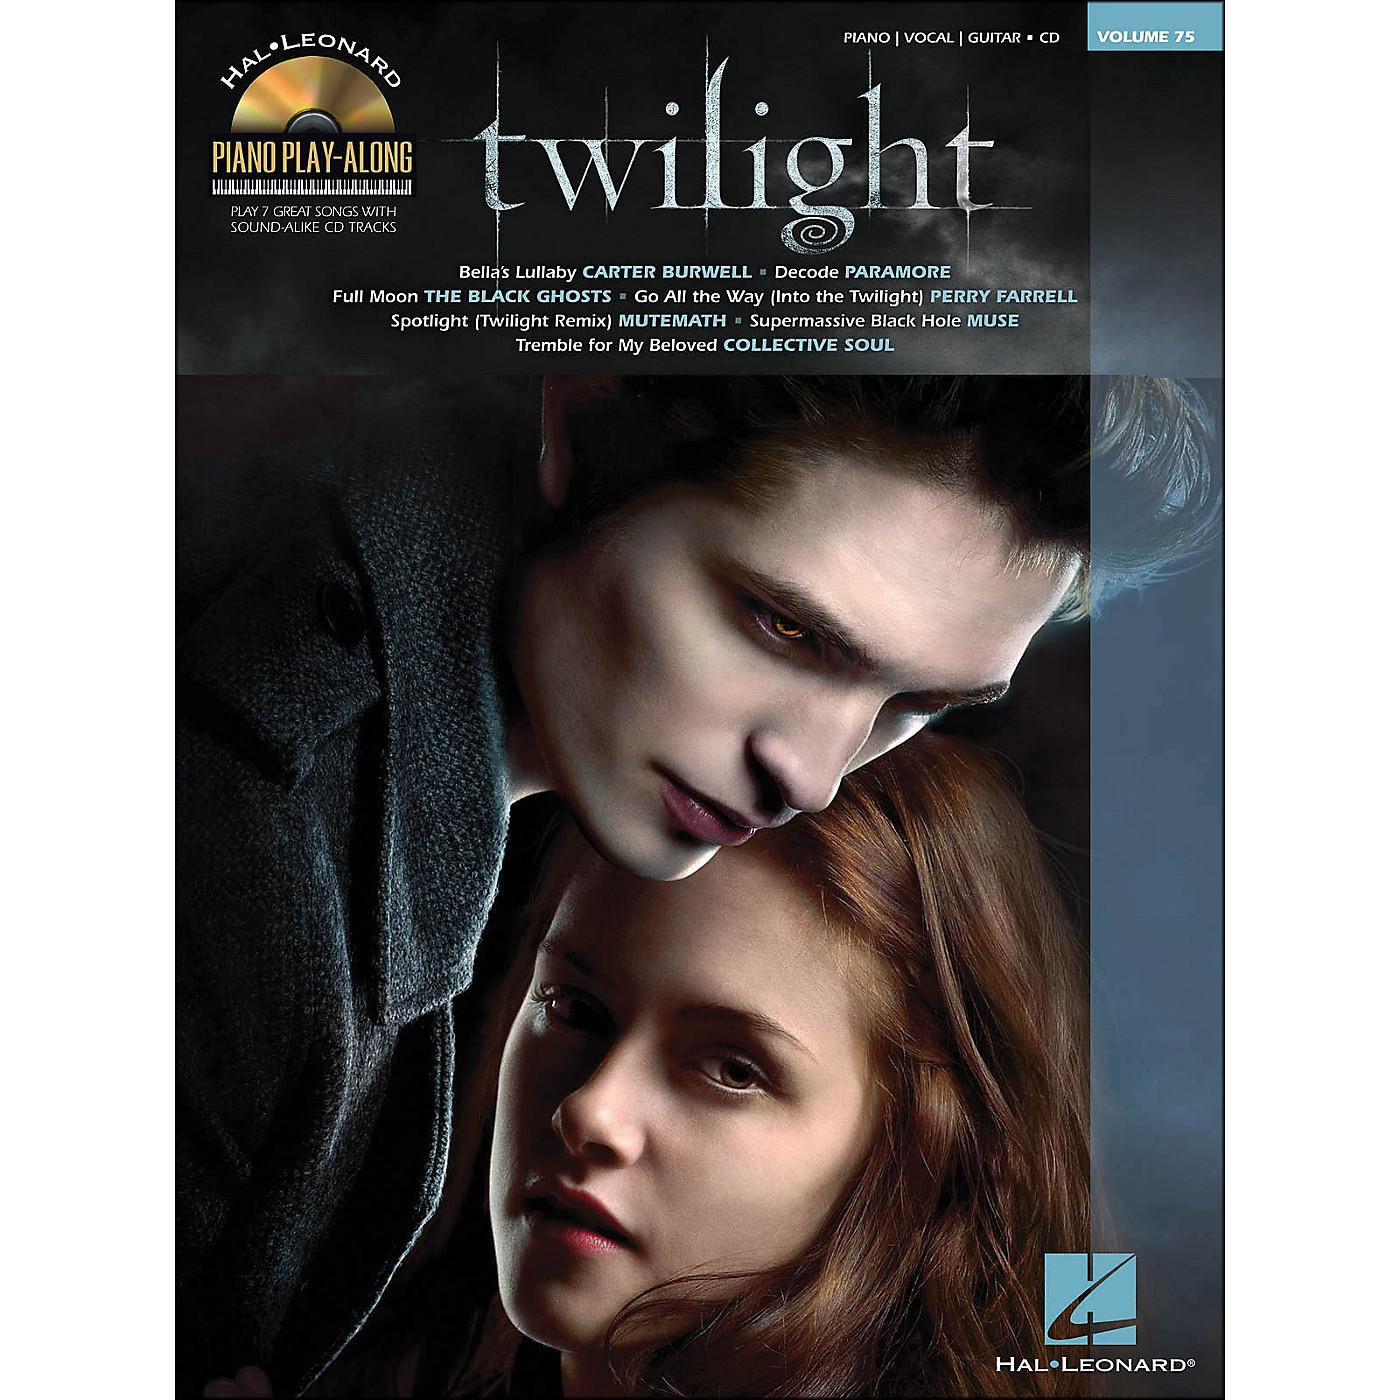 Hal Leonard Twilight - Music From The Motion Picture Soundtrack - Piano Play-Along Volume 75 (Book/CD) arranged for piano, vocal, and guitar (P/V/G) thumbnail